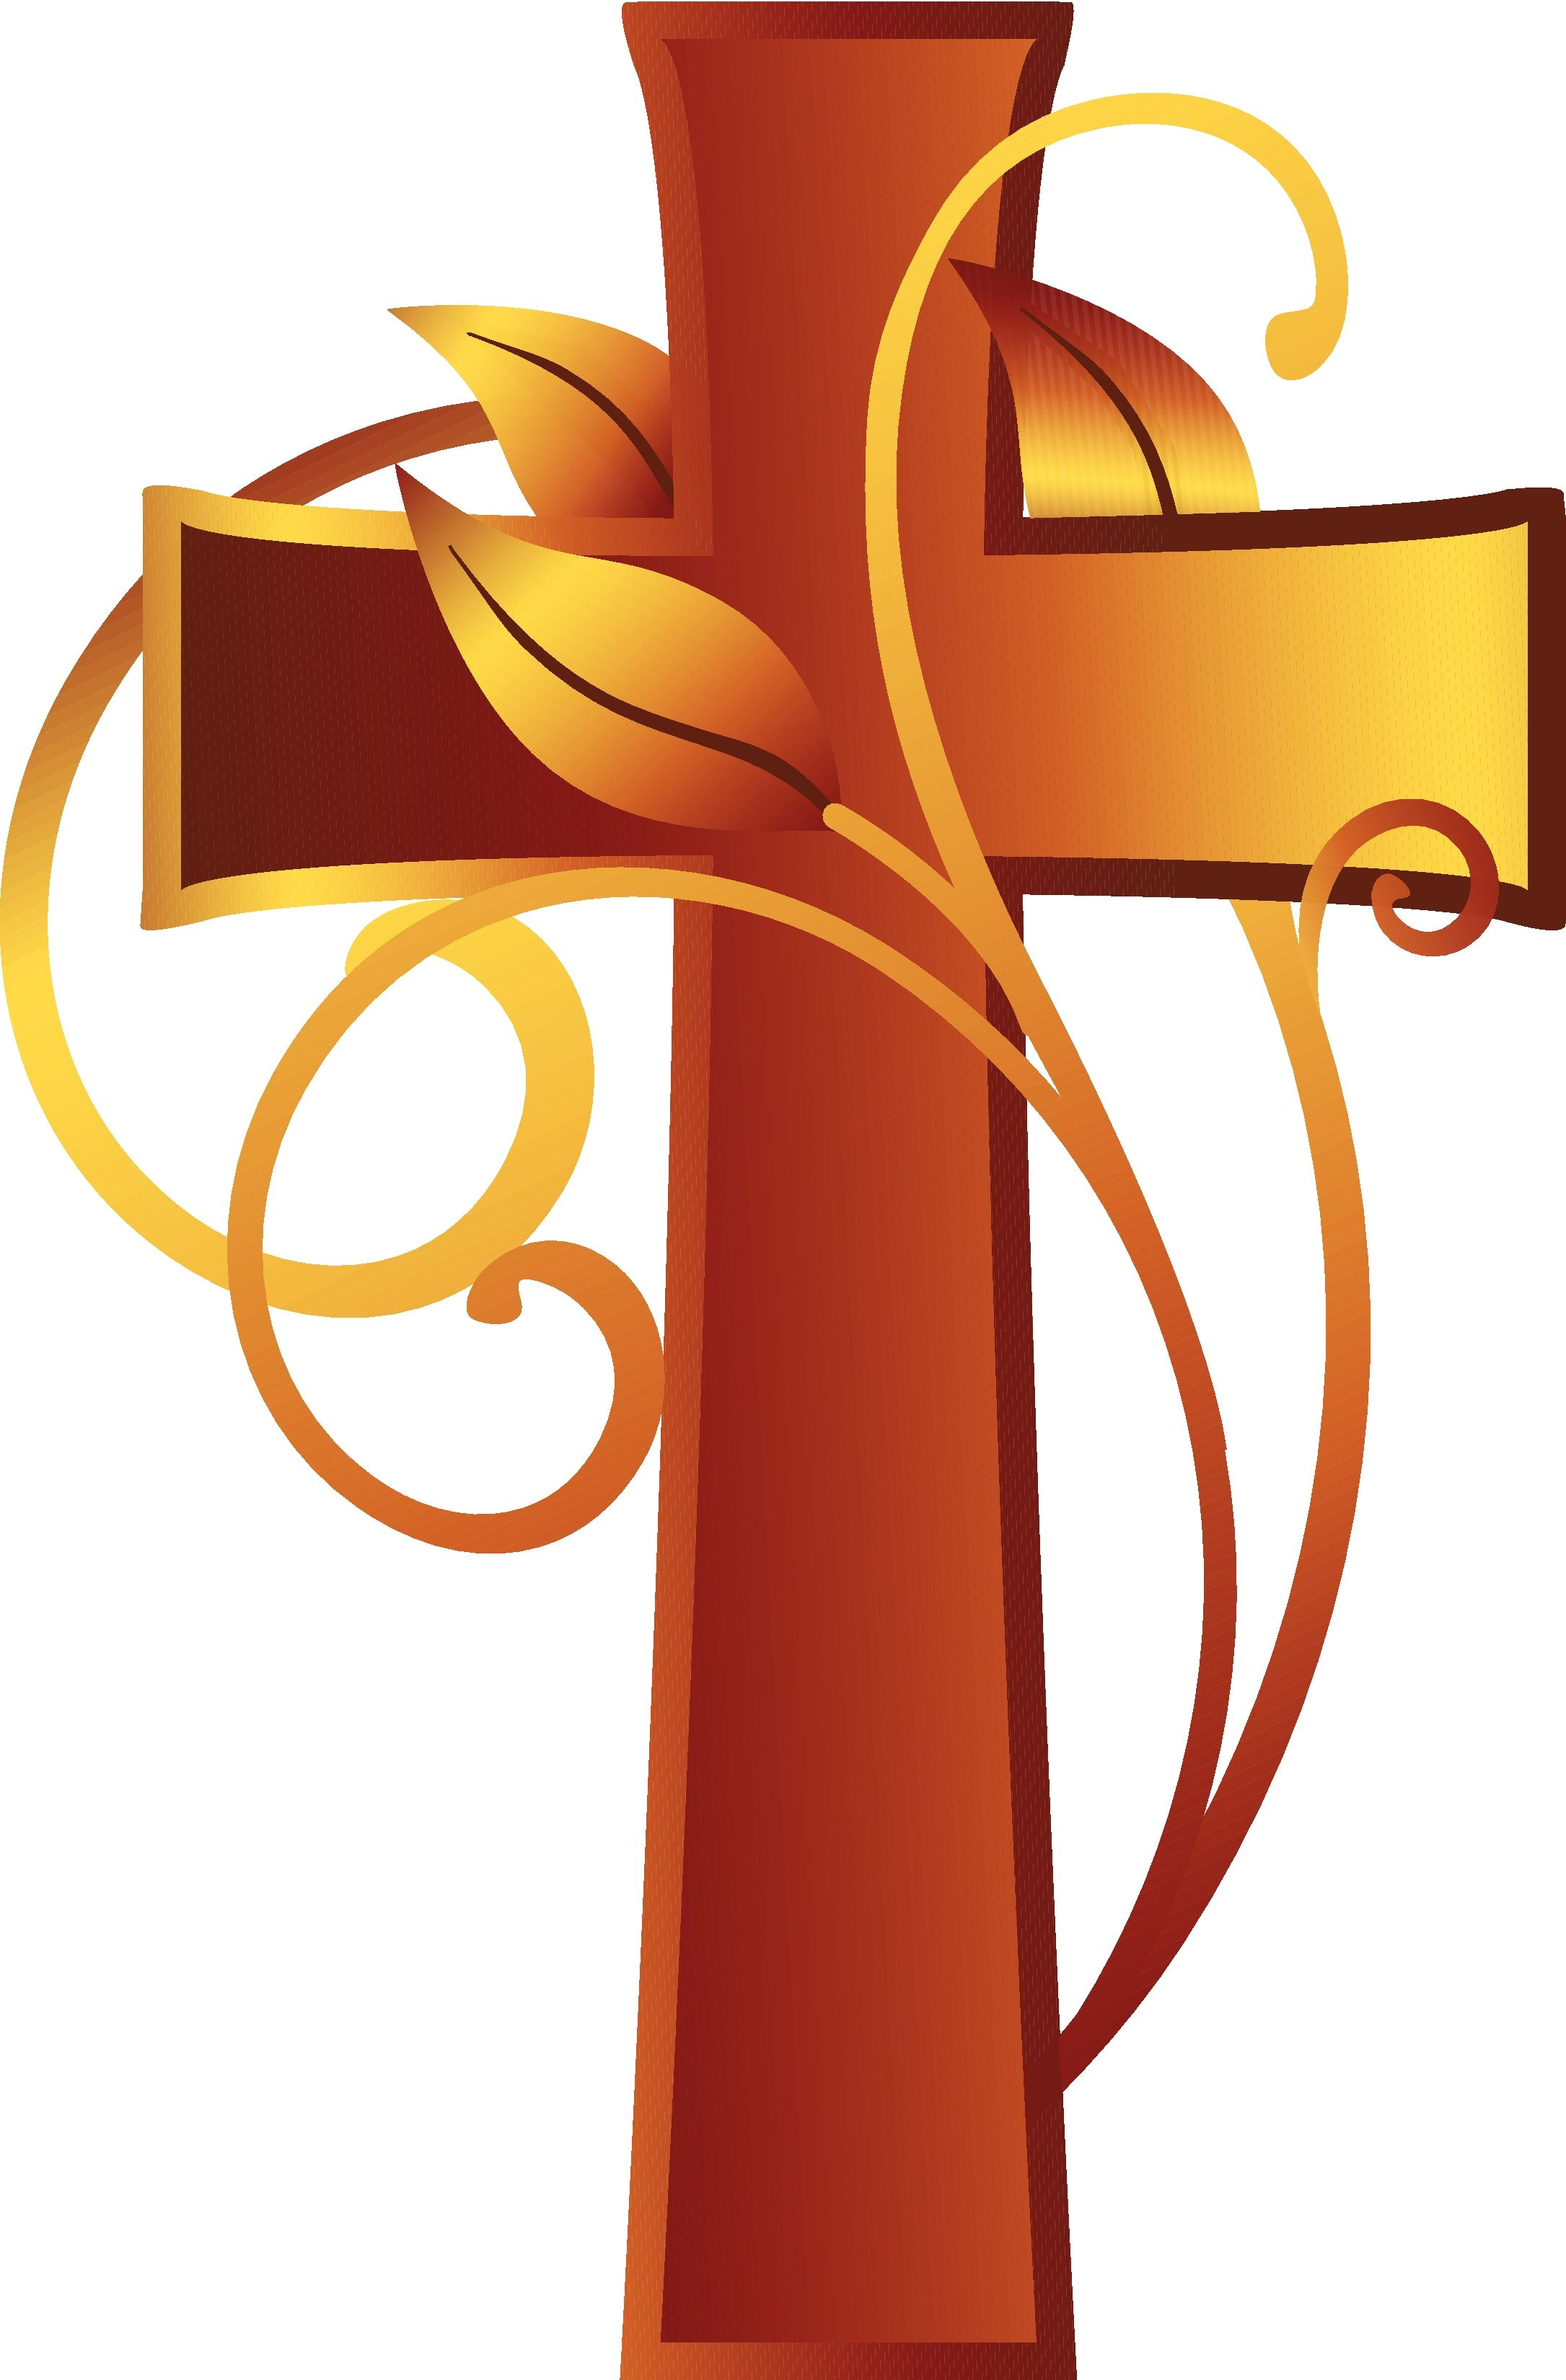 Clip art crosses free the christian and pagan walking in